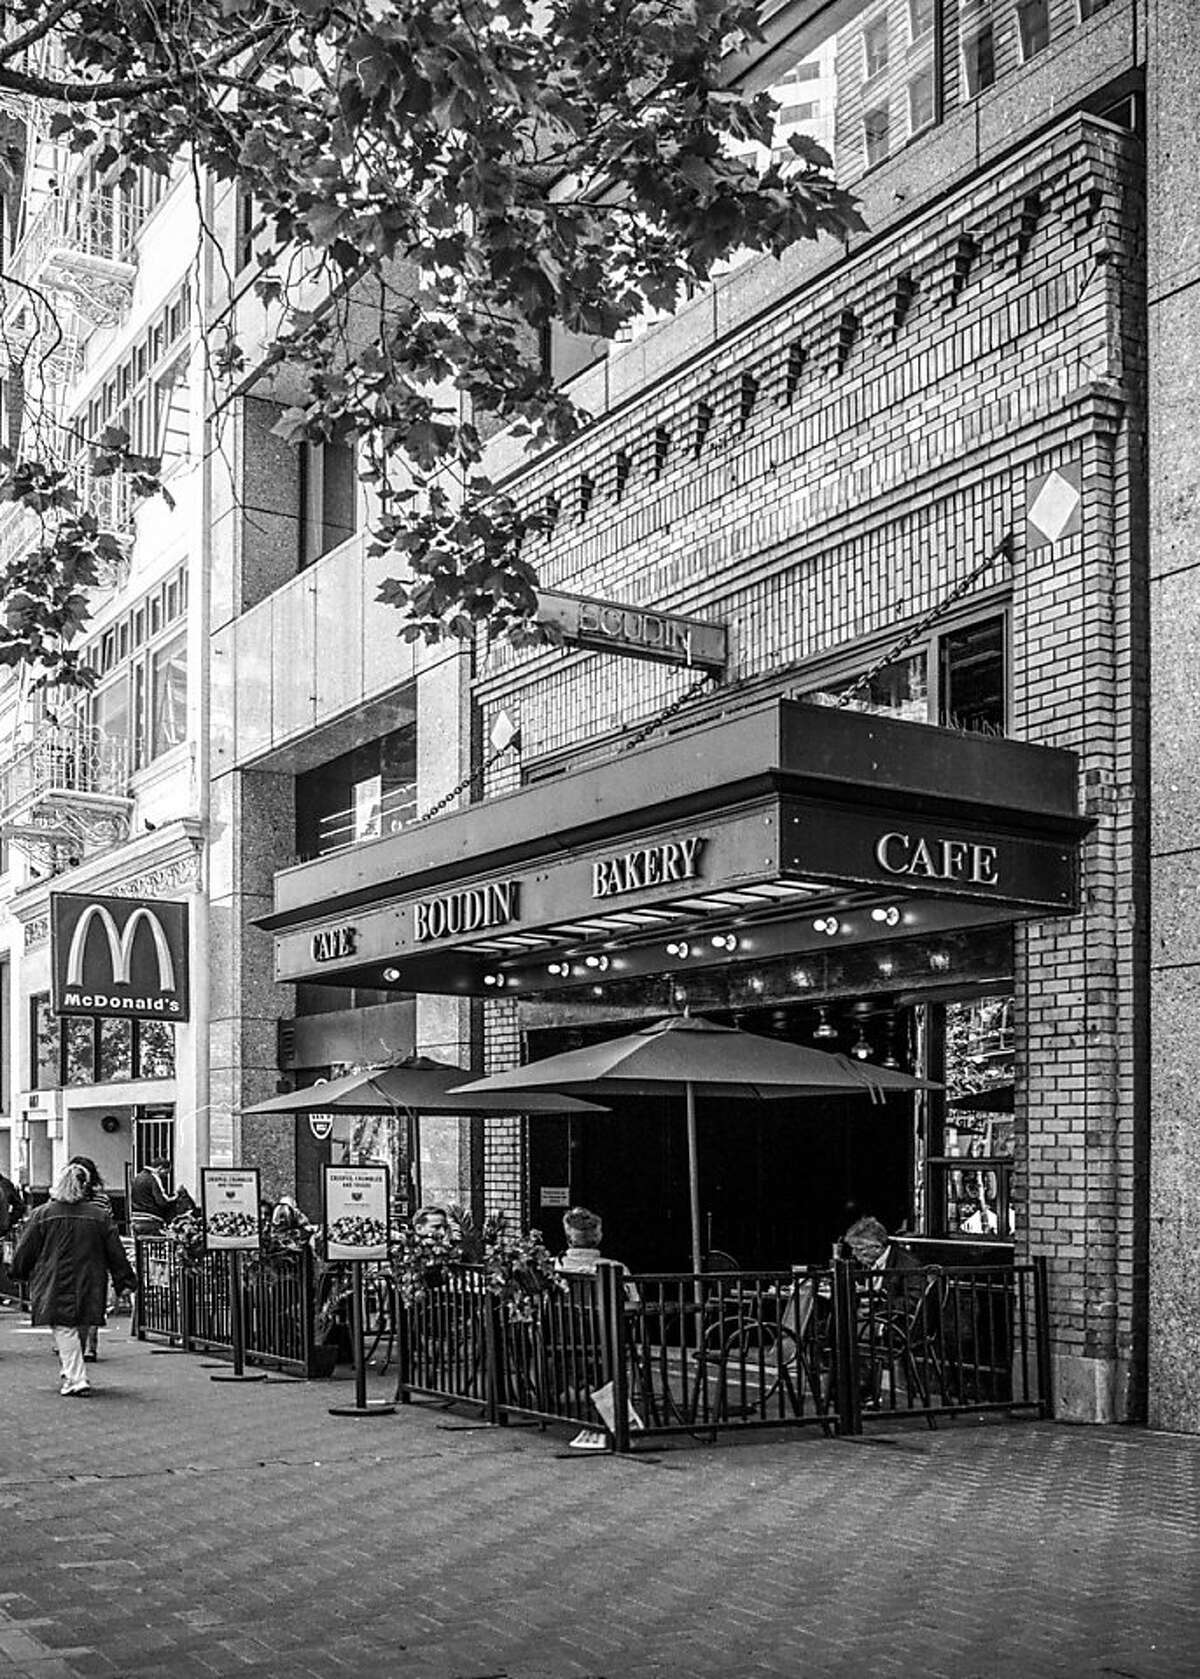 The Hoffman Grill on Market Street, saved in the 1980s by being absorbed into a new office tower, is among the subjects of a new exhibition on historic preservation at the SPUR Urban Center Gallery.